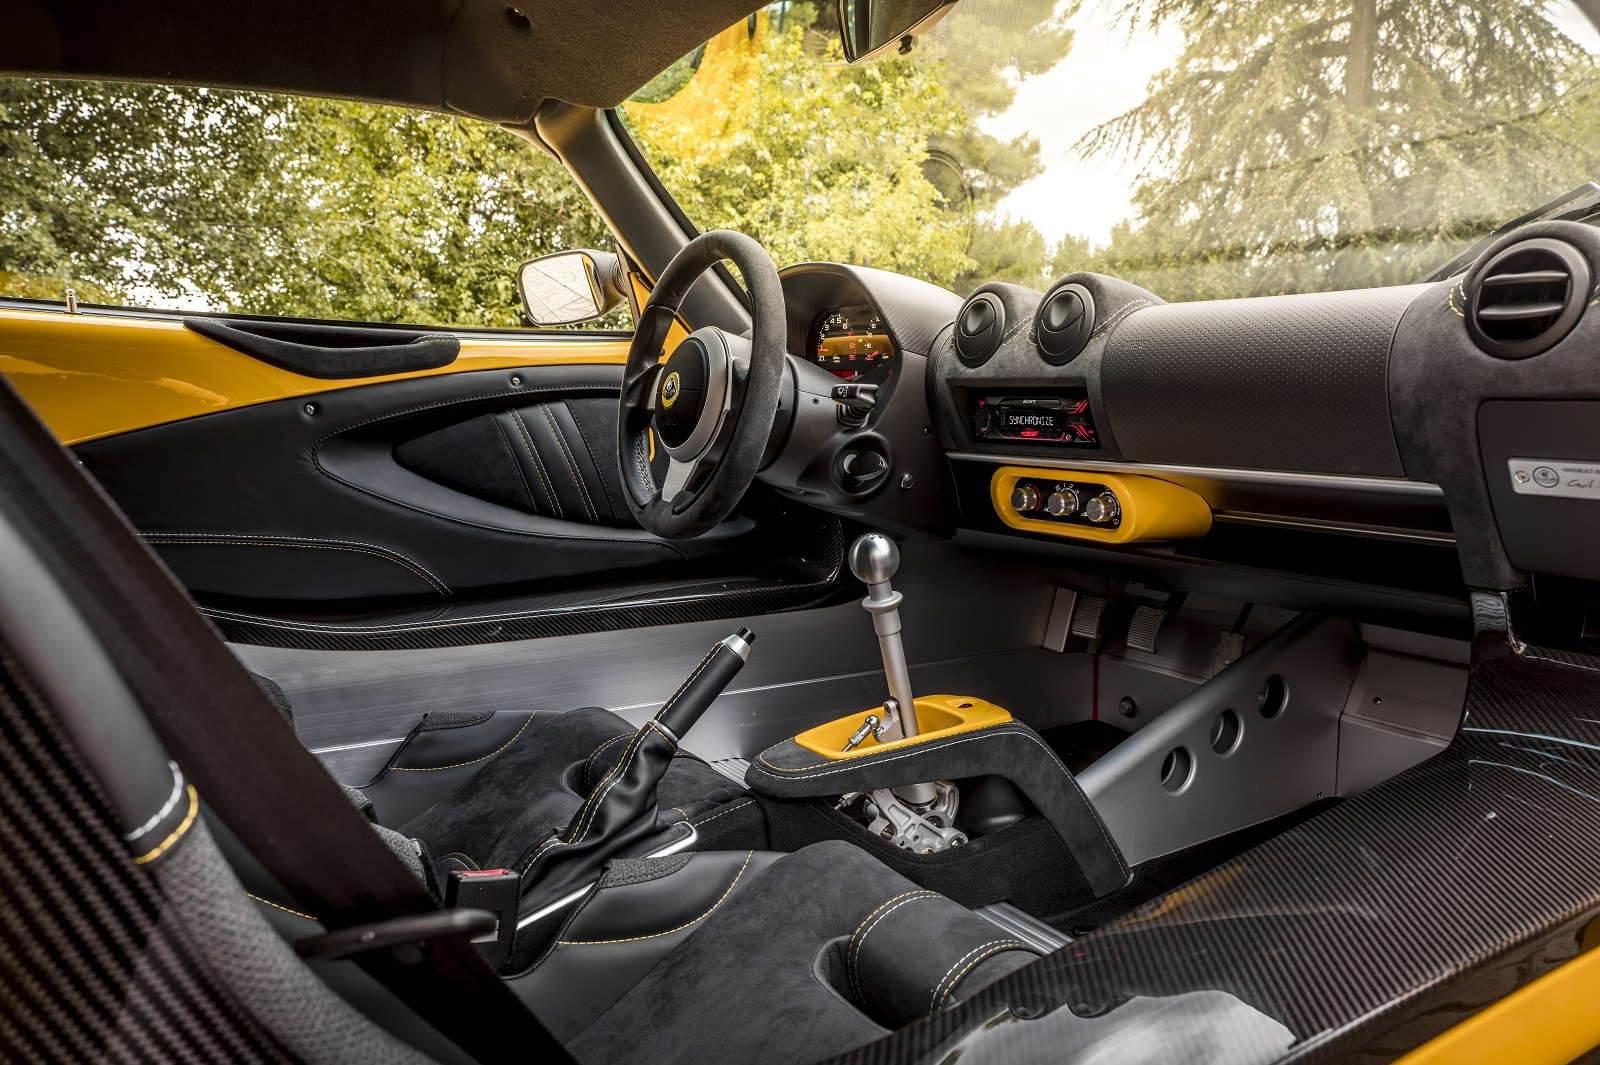 65801_9870_Yellow_Exige_430_Cup_044